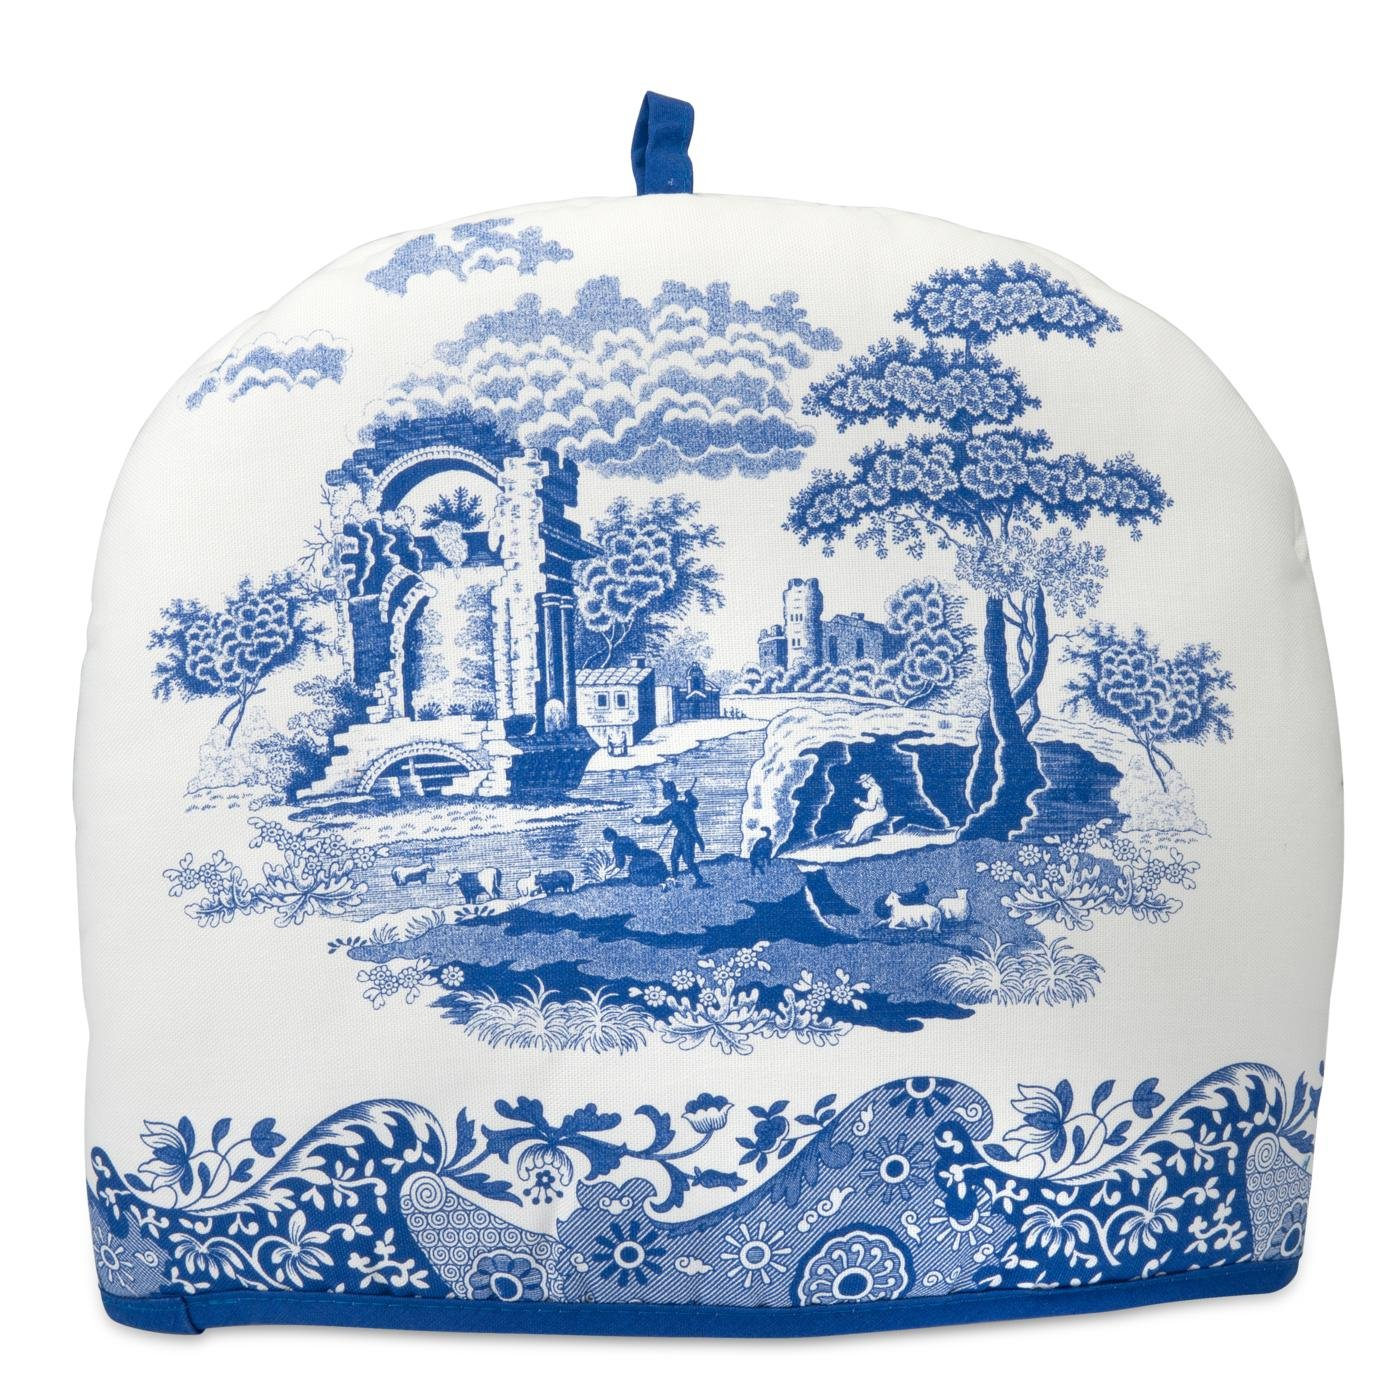 Spode Blue Italian Tea Cosy by Pimpernel